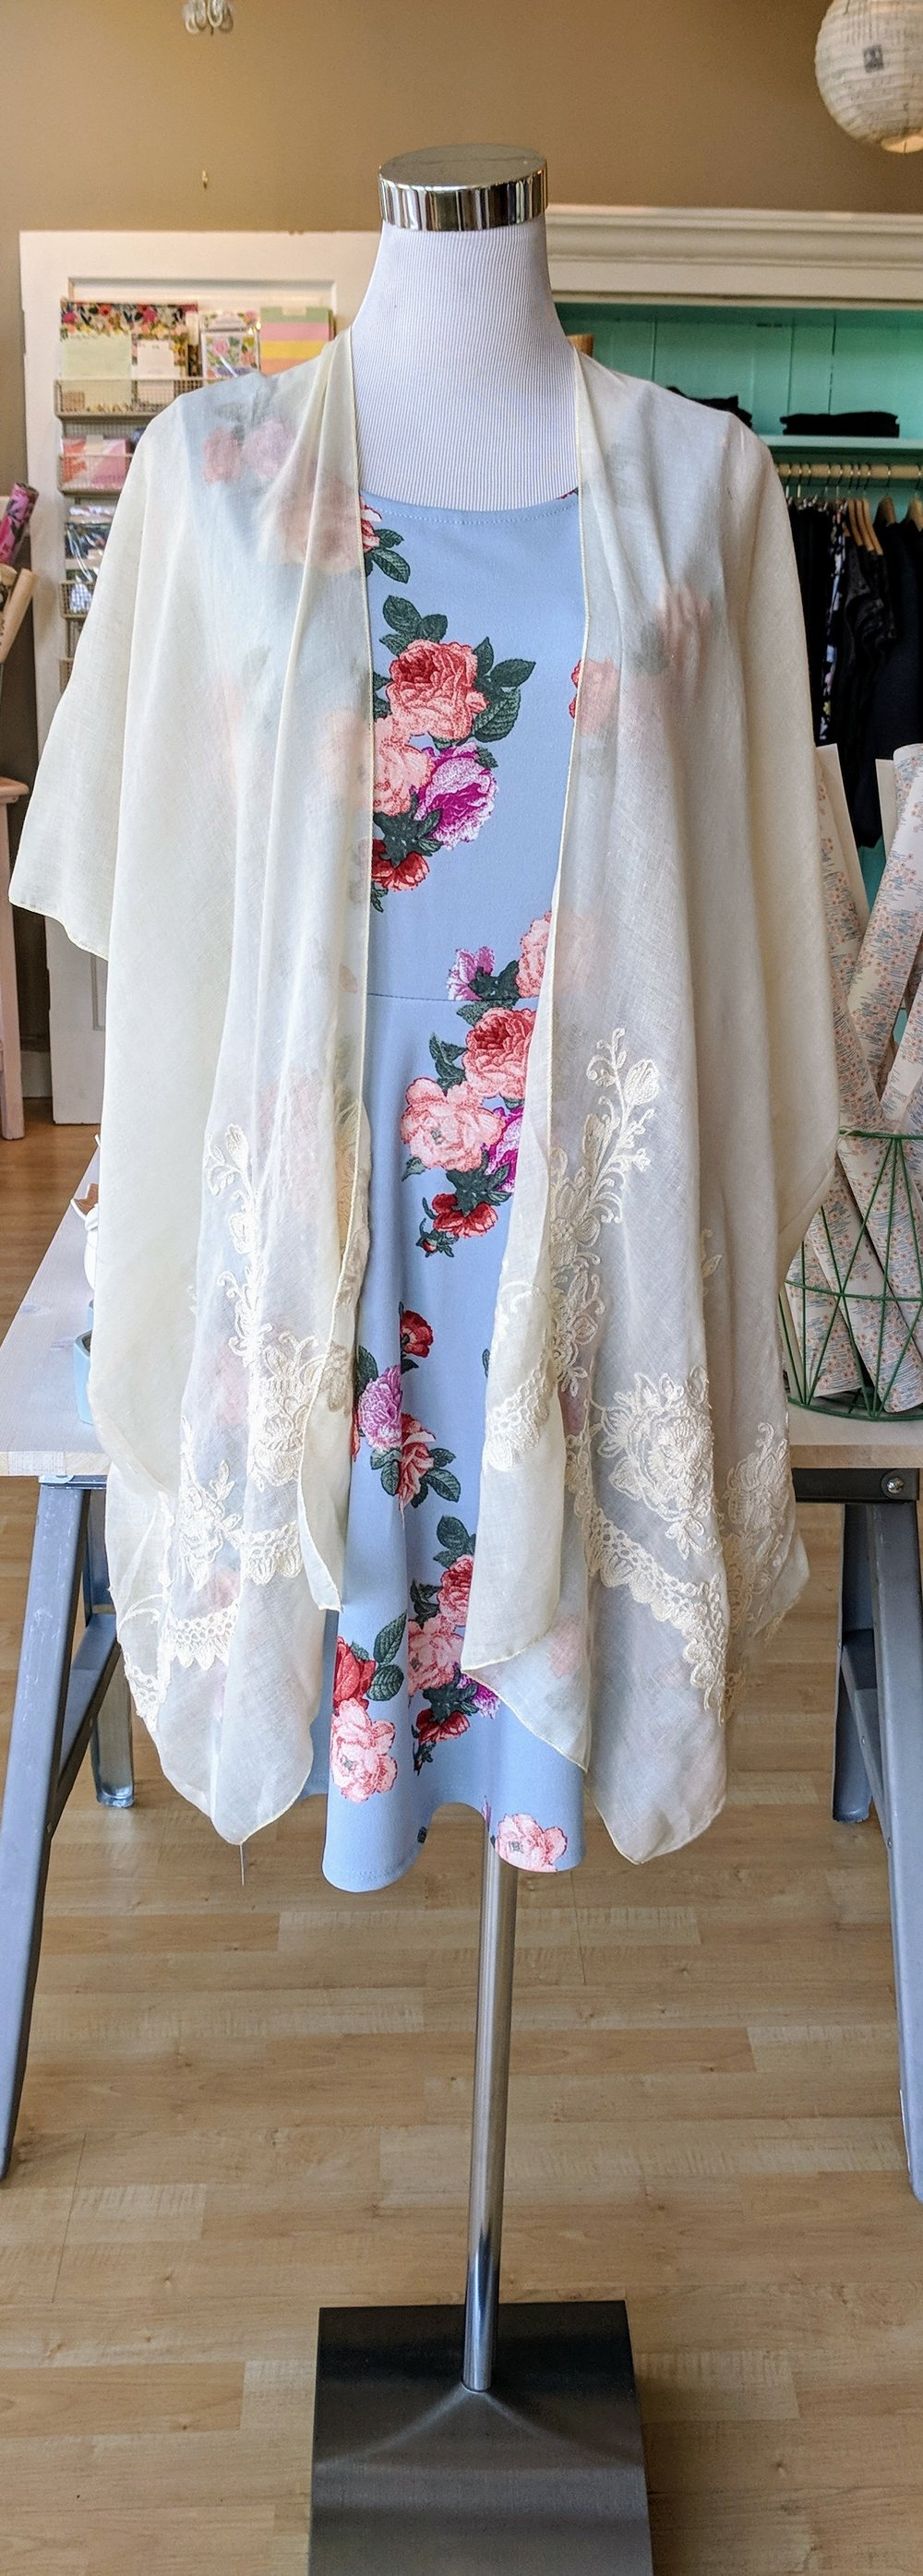 Ivory Kimono with embroidered floral blooms along bottom. $24